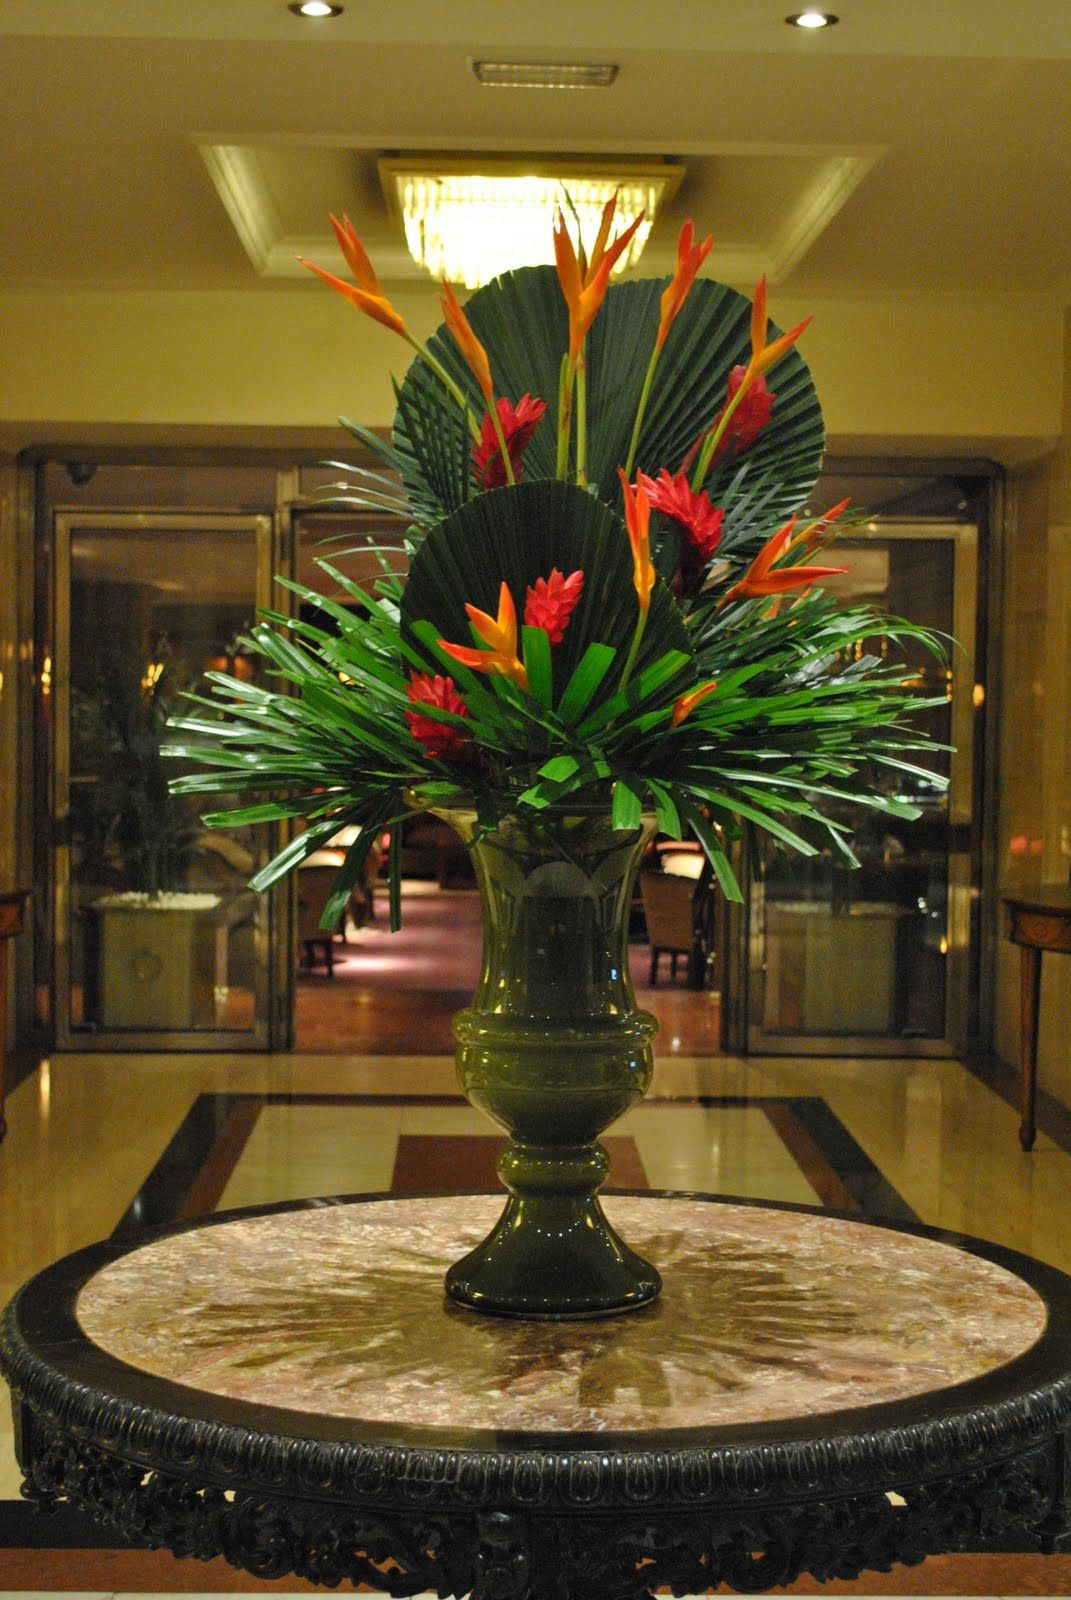 Love this tropical arrangement great for an entry décor